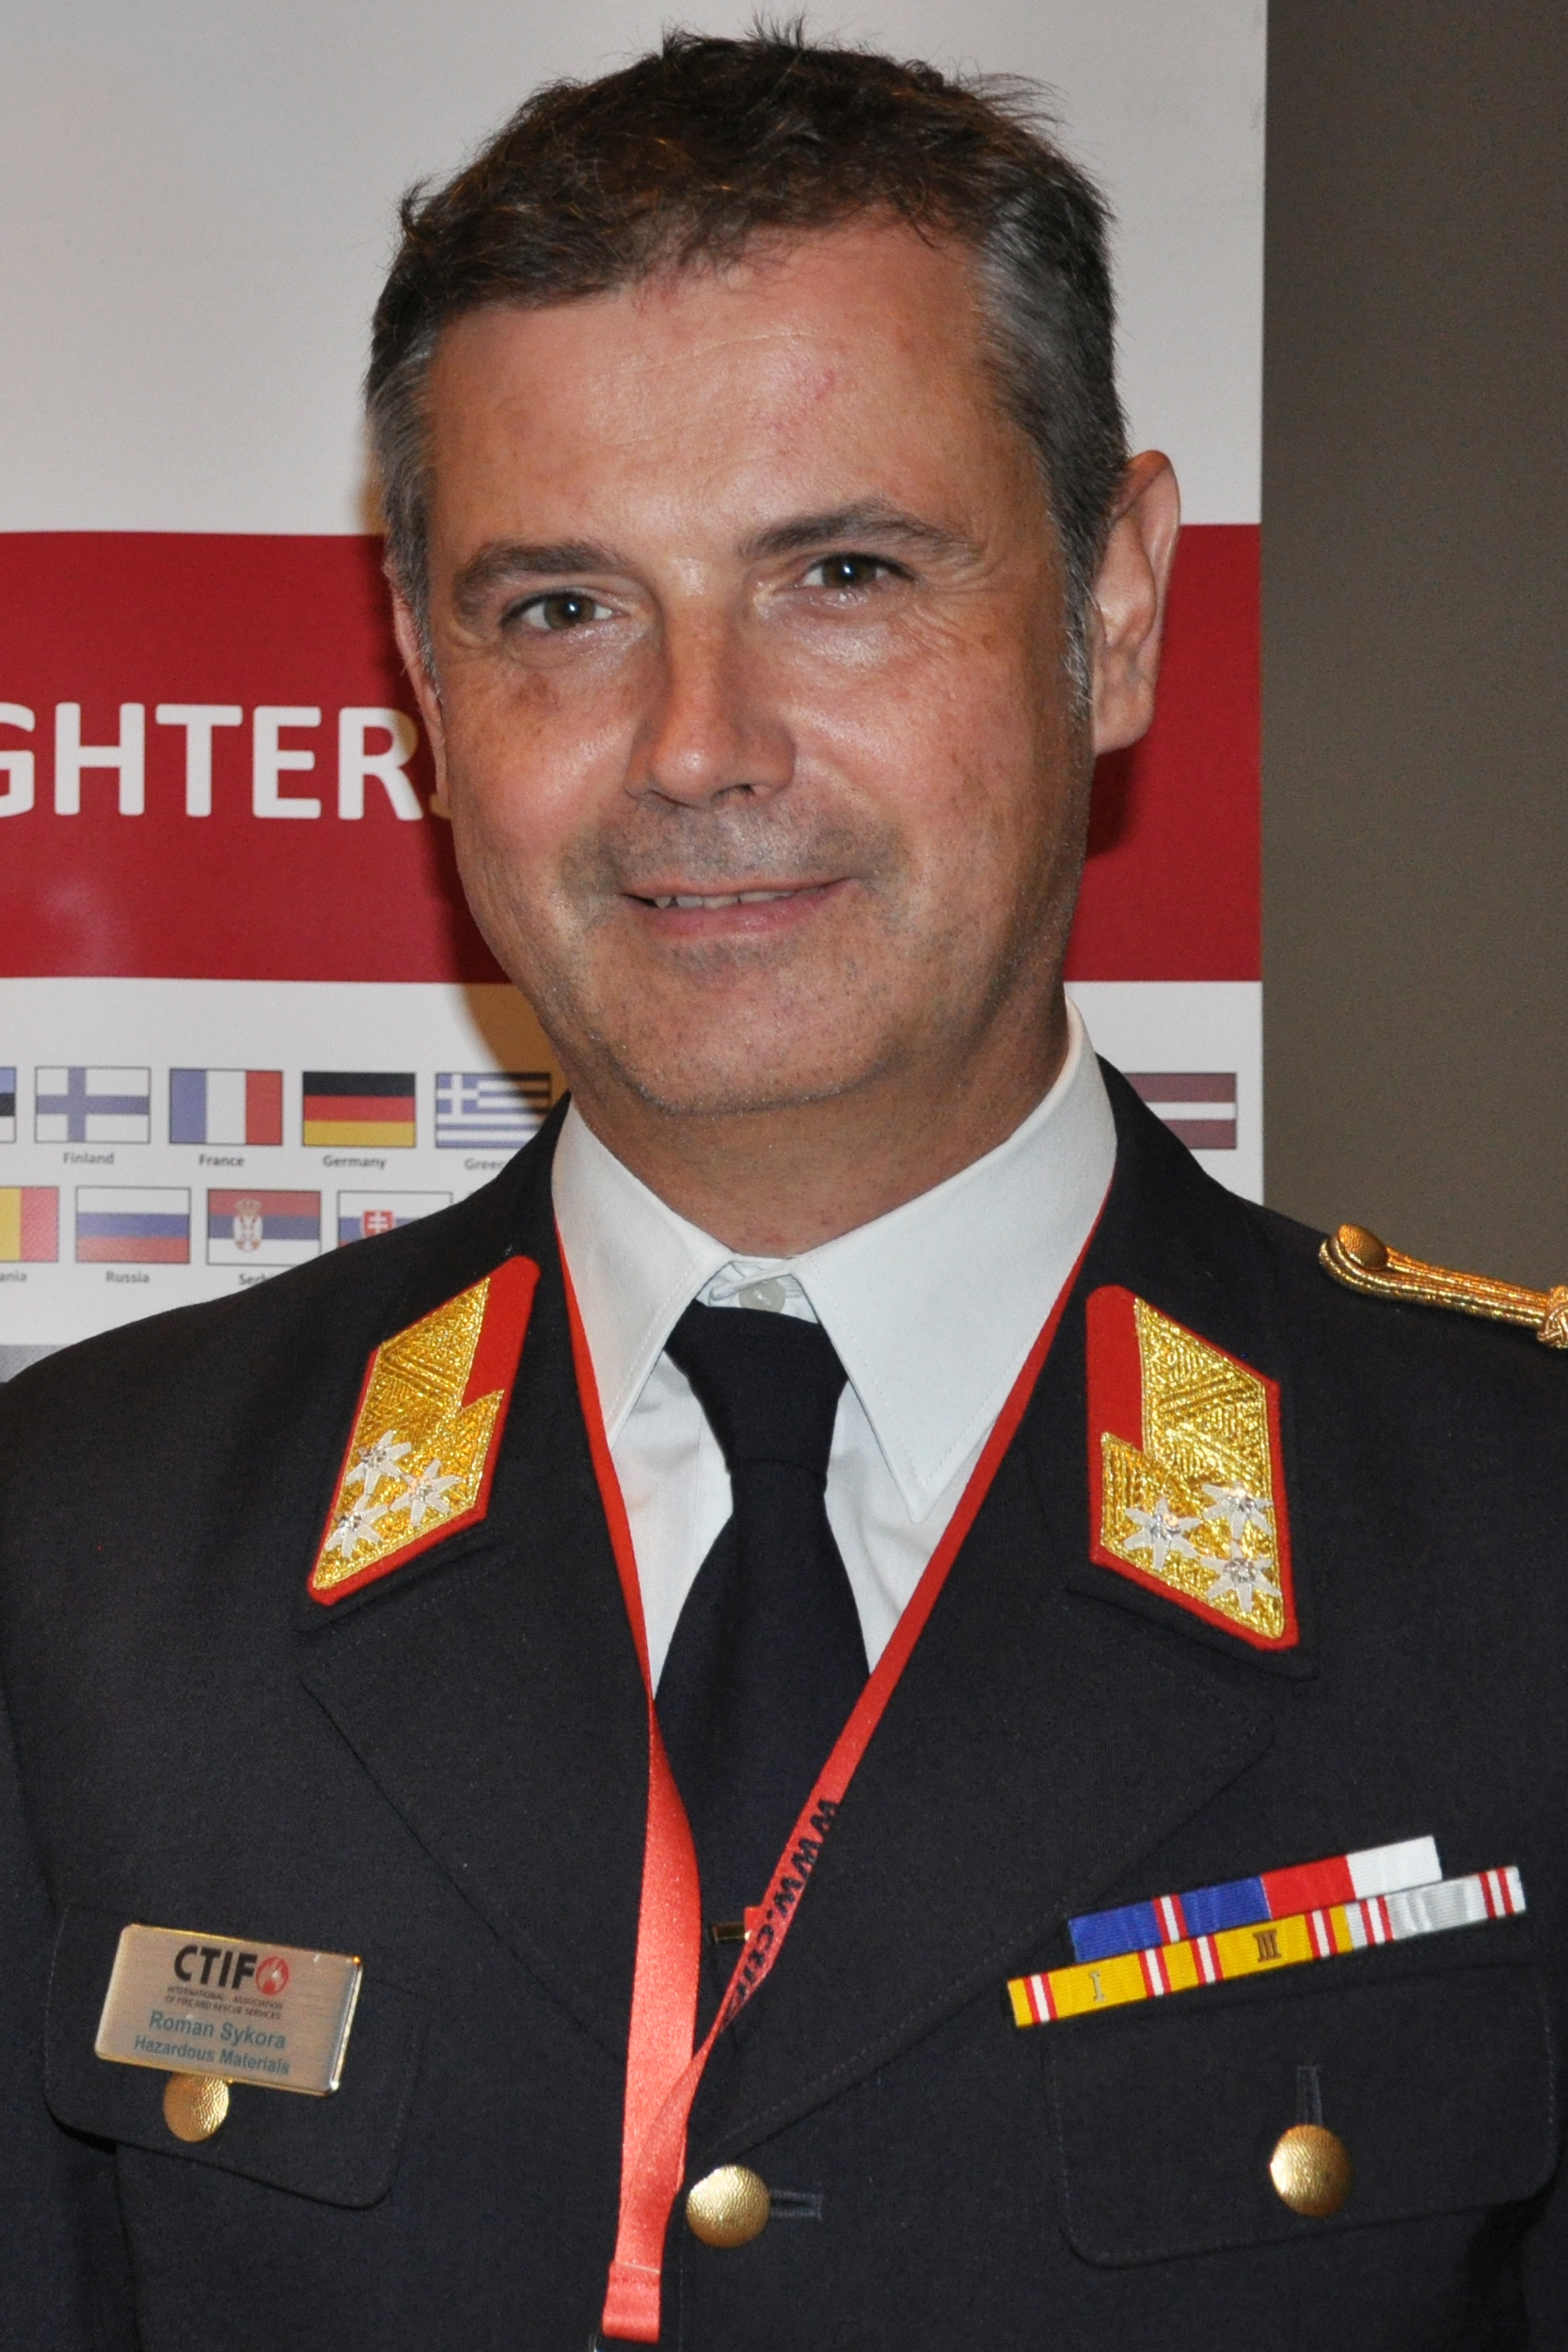 Roman Sykora, General Secretary of CTIF since July 2019.